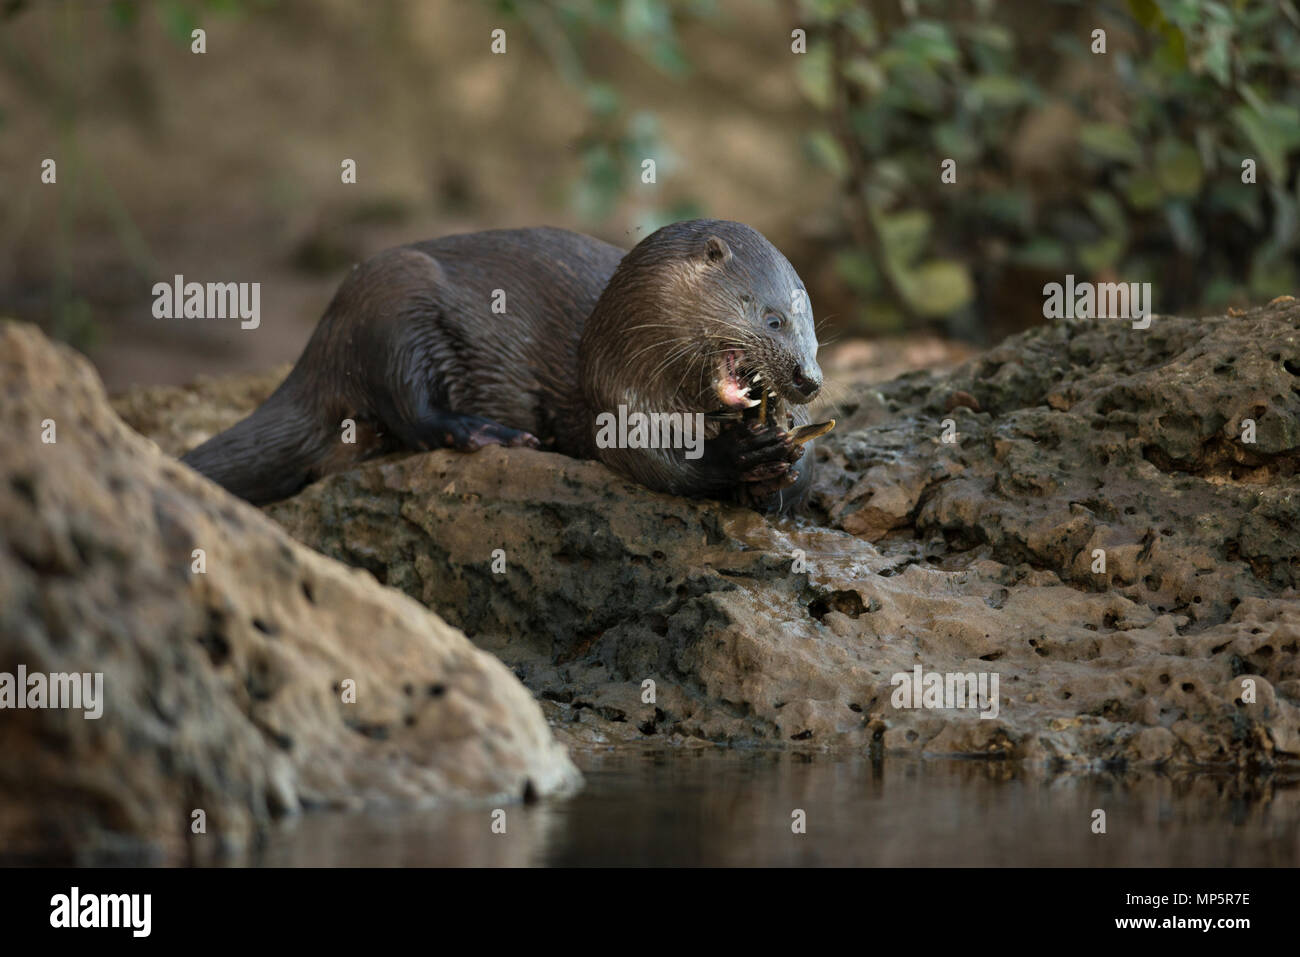 Neotropical River Otter (Lontra longicaudis) eating a catfish in South Pantanal, Brazil - Stock Image